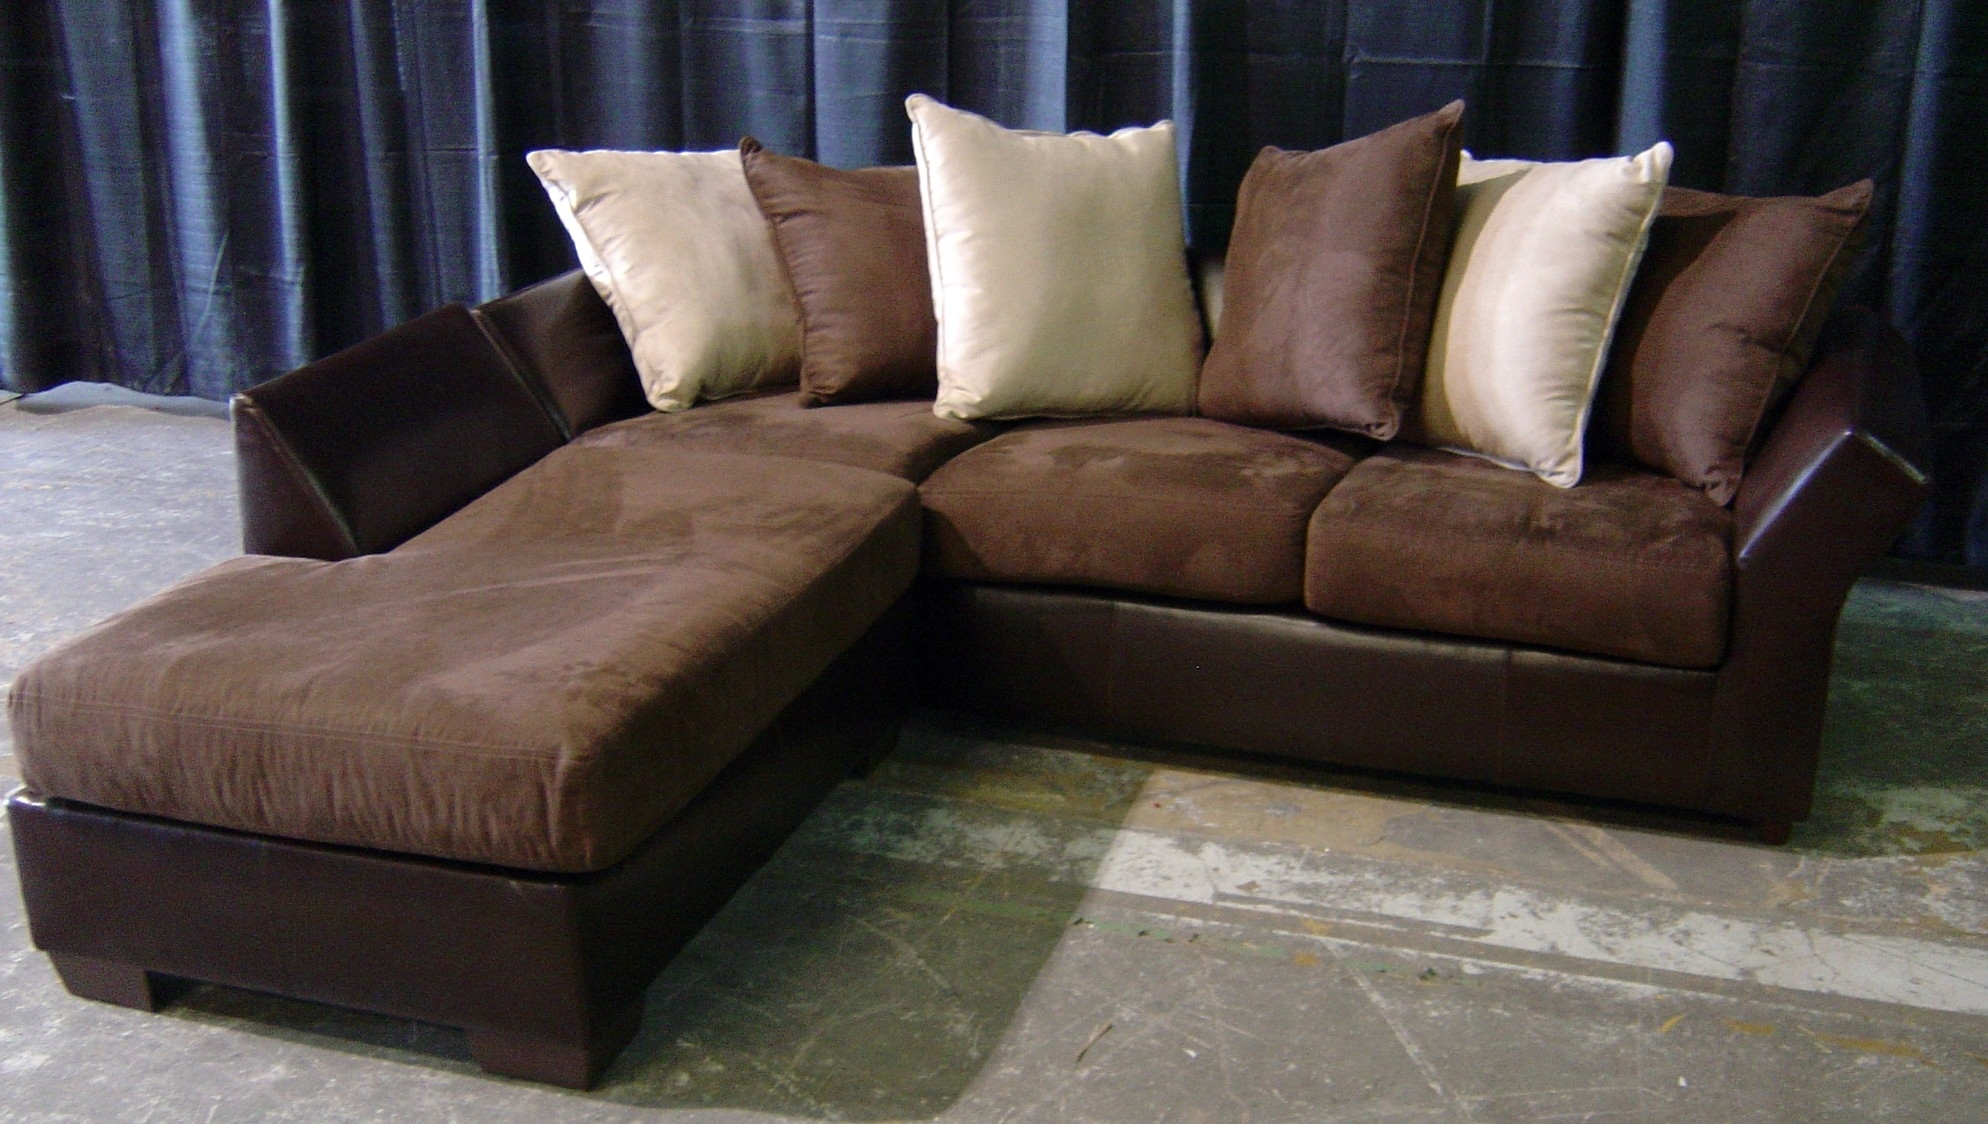 Awesome Leather And Suede Sectional Sofa 63 For With Leather And pertaining to Leather And Suede Sectional Sofas (Image 2 of 10)